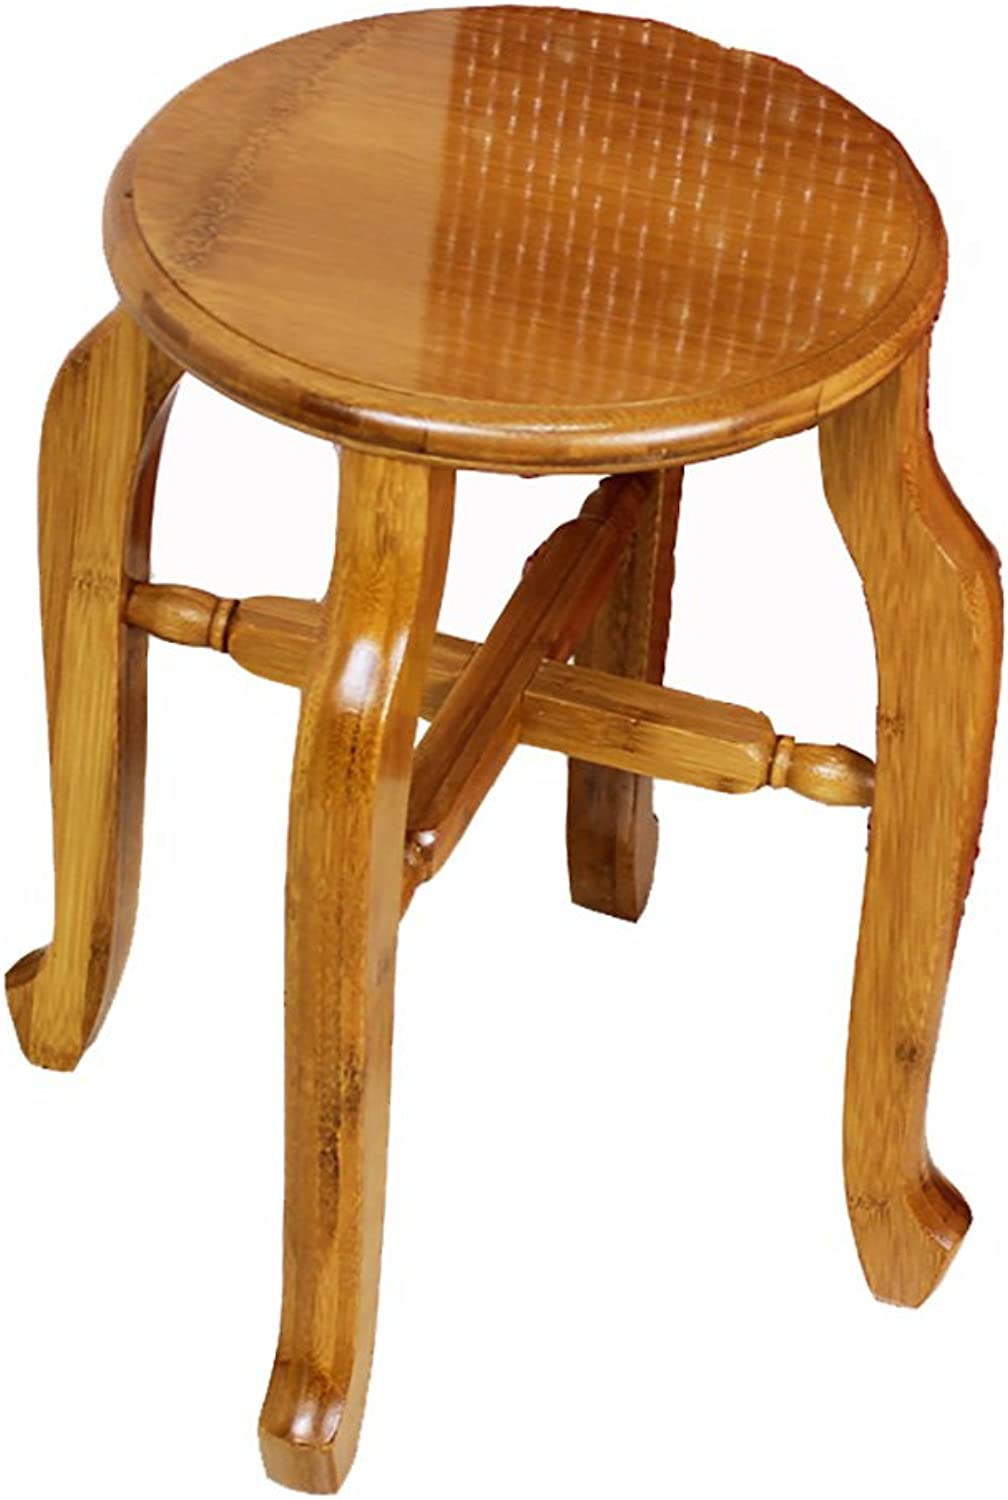 European Chair Wooden Stool Solid Wood Stool Fashion Stools Table Stool Household shoes Stool